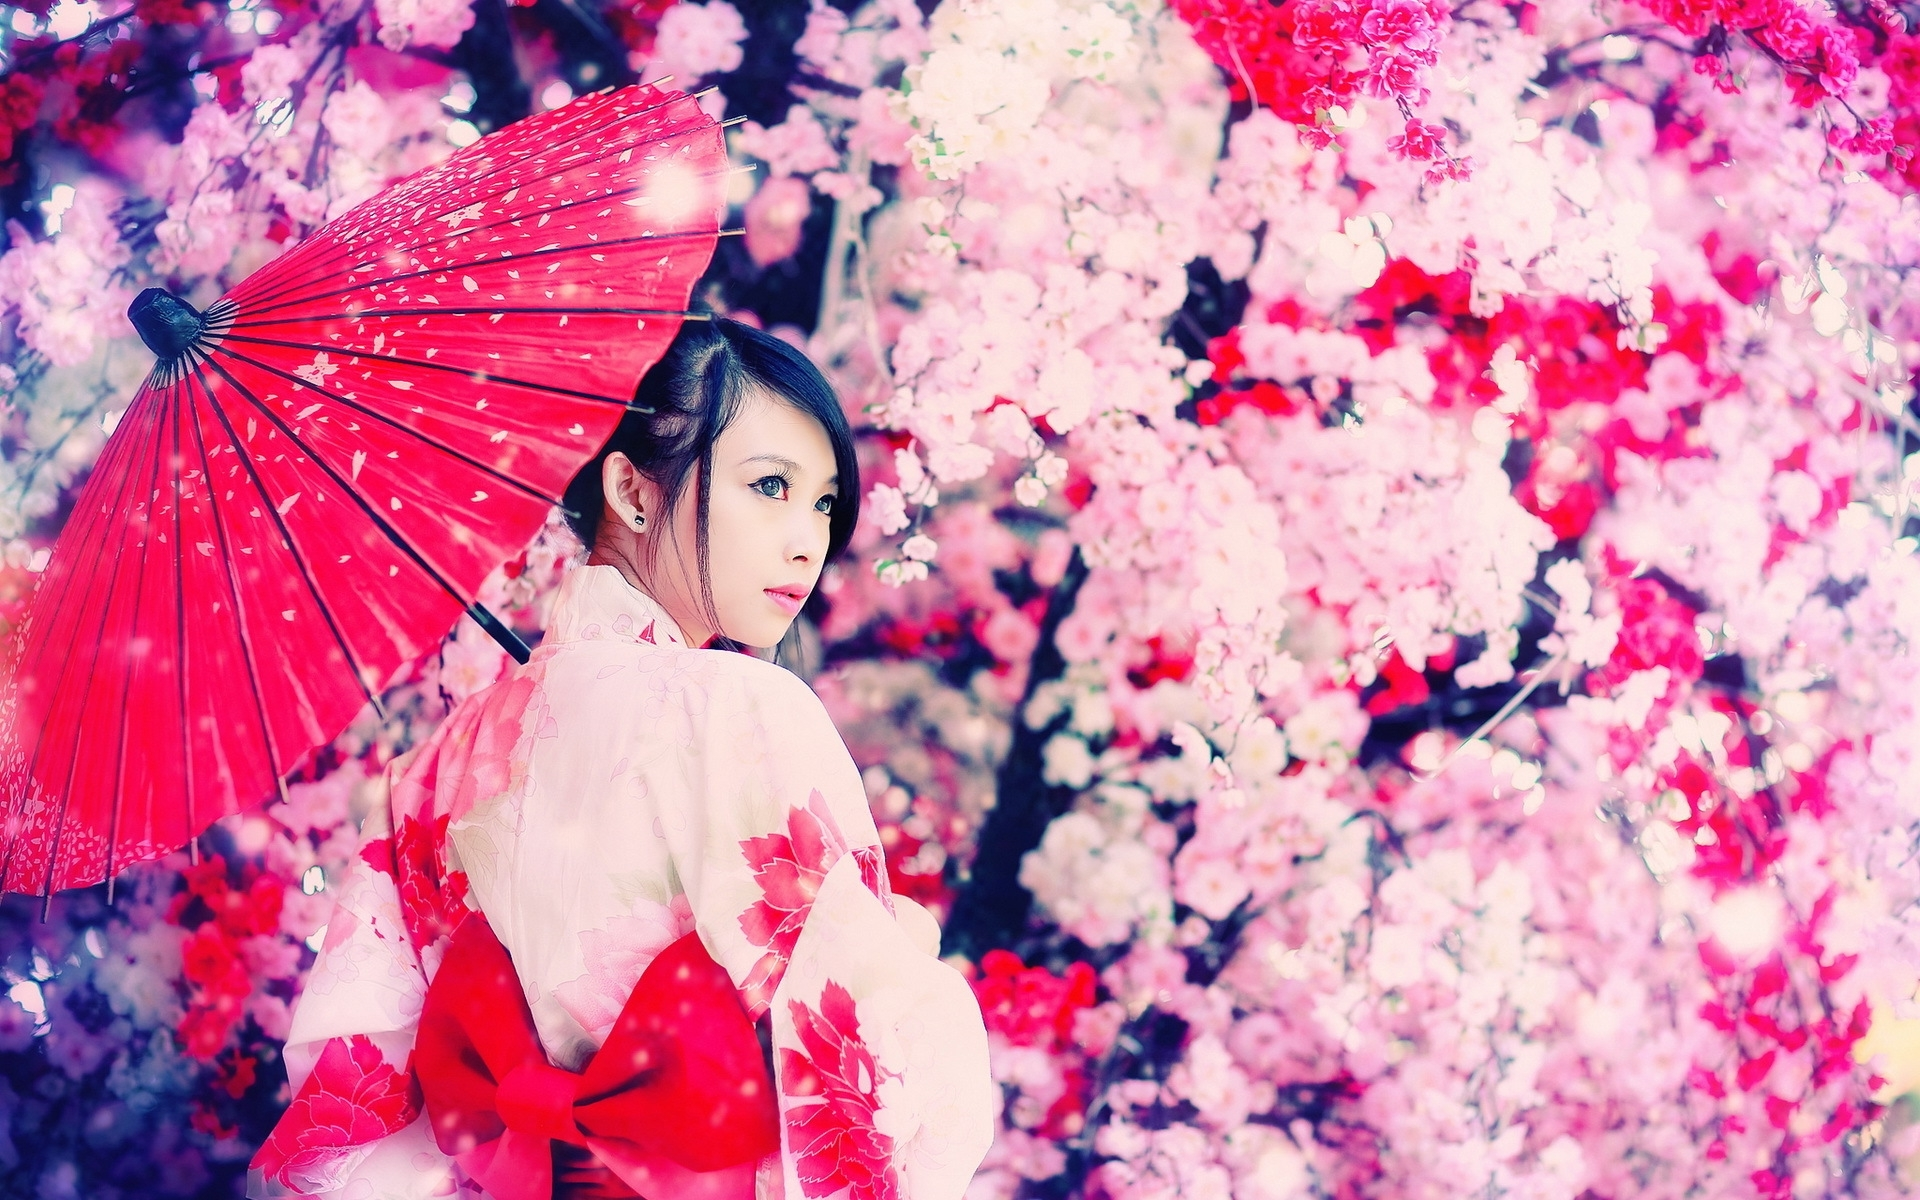 Geisha wallpaper 1920x1200